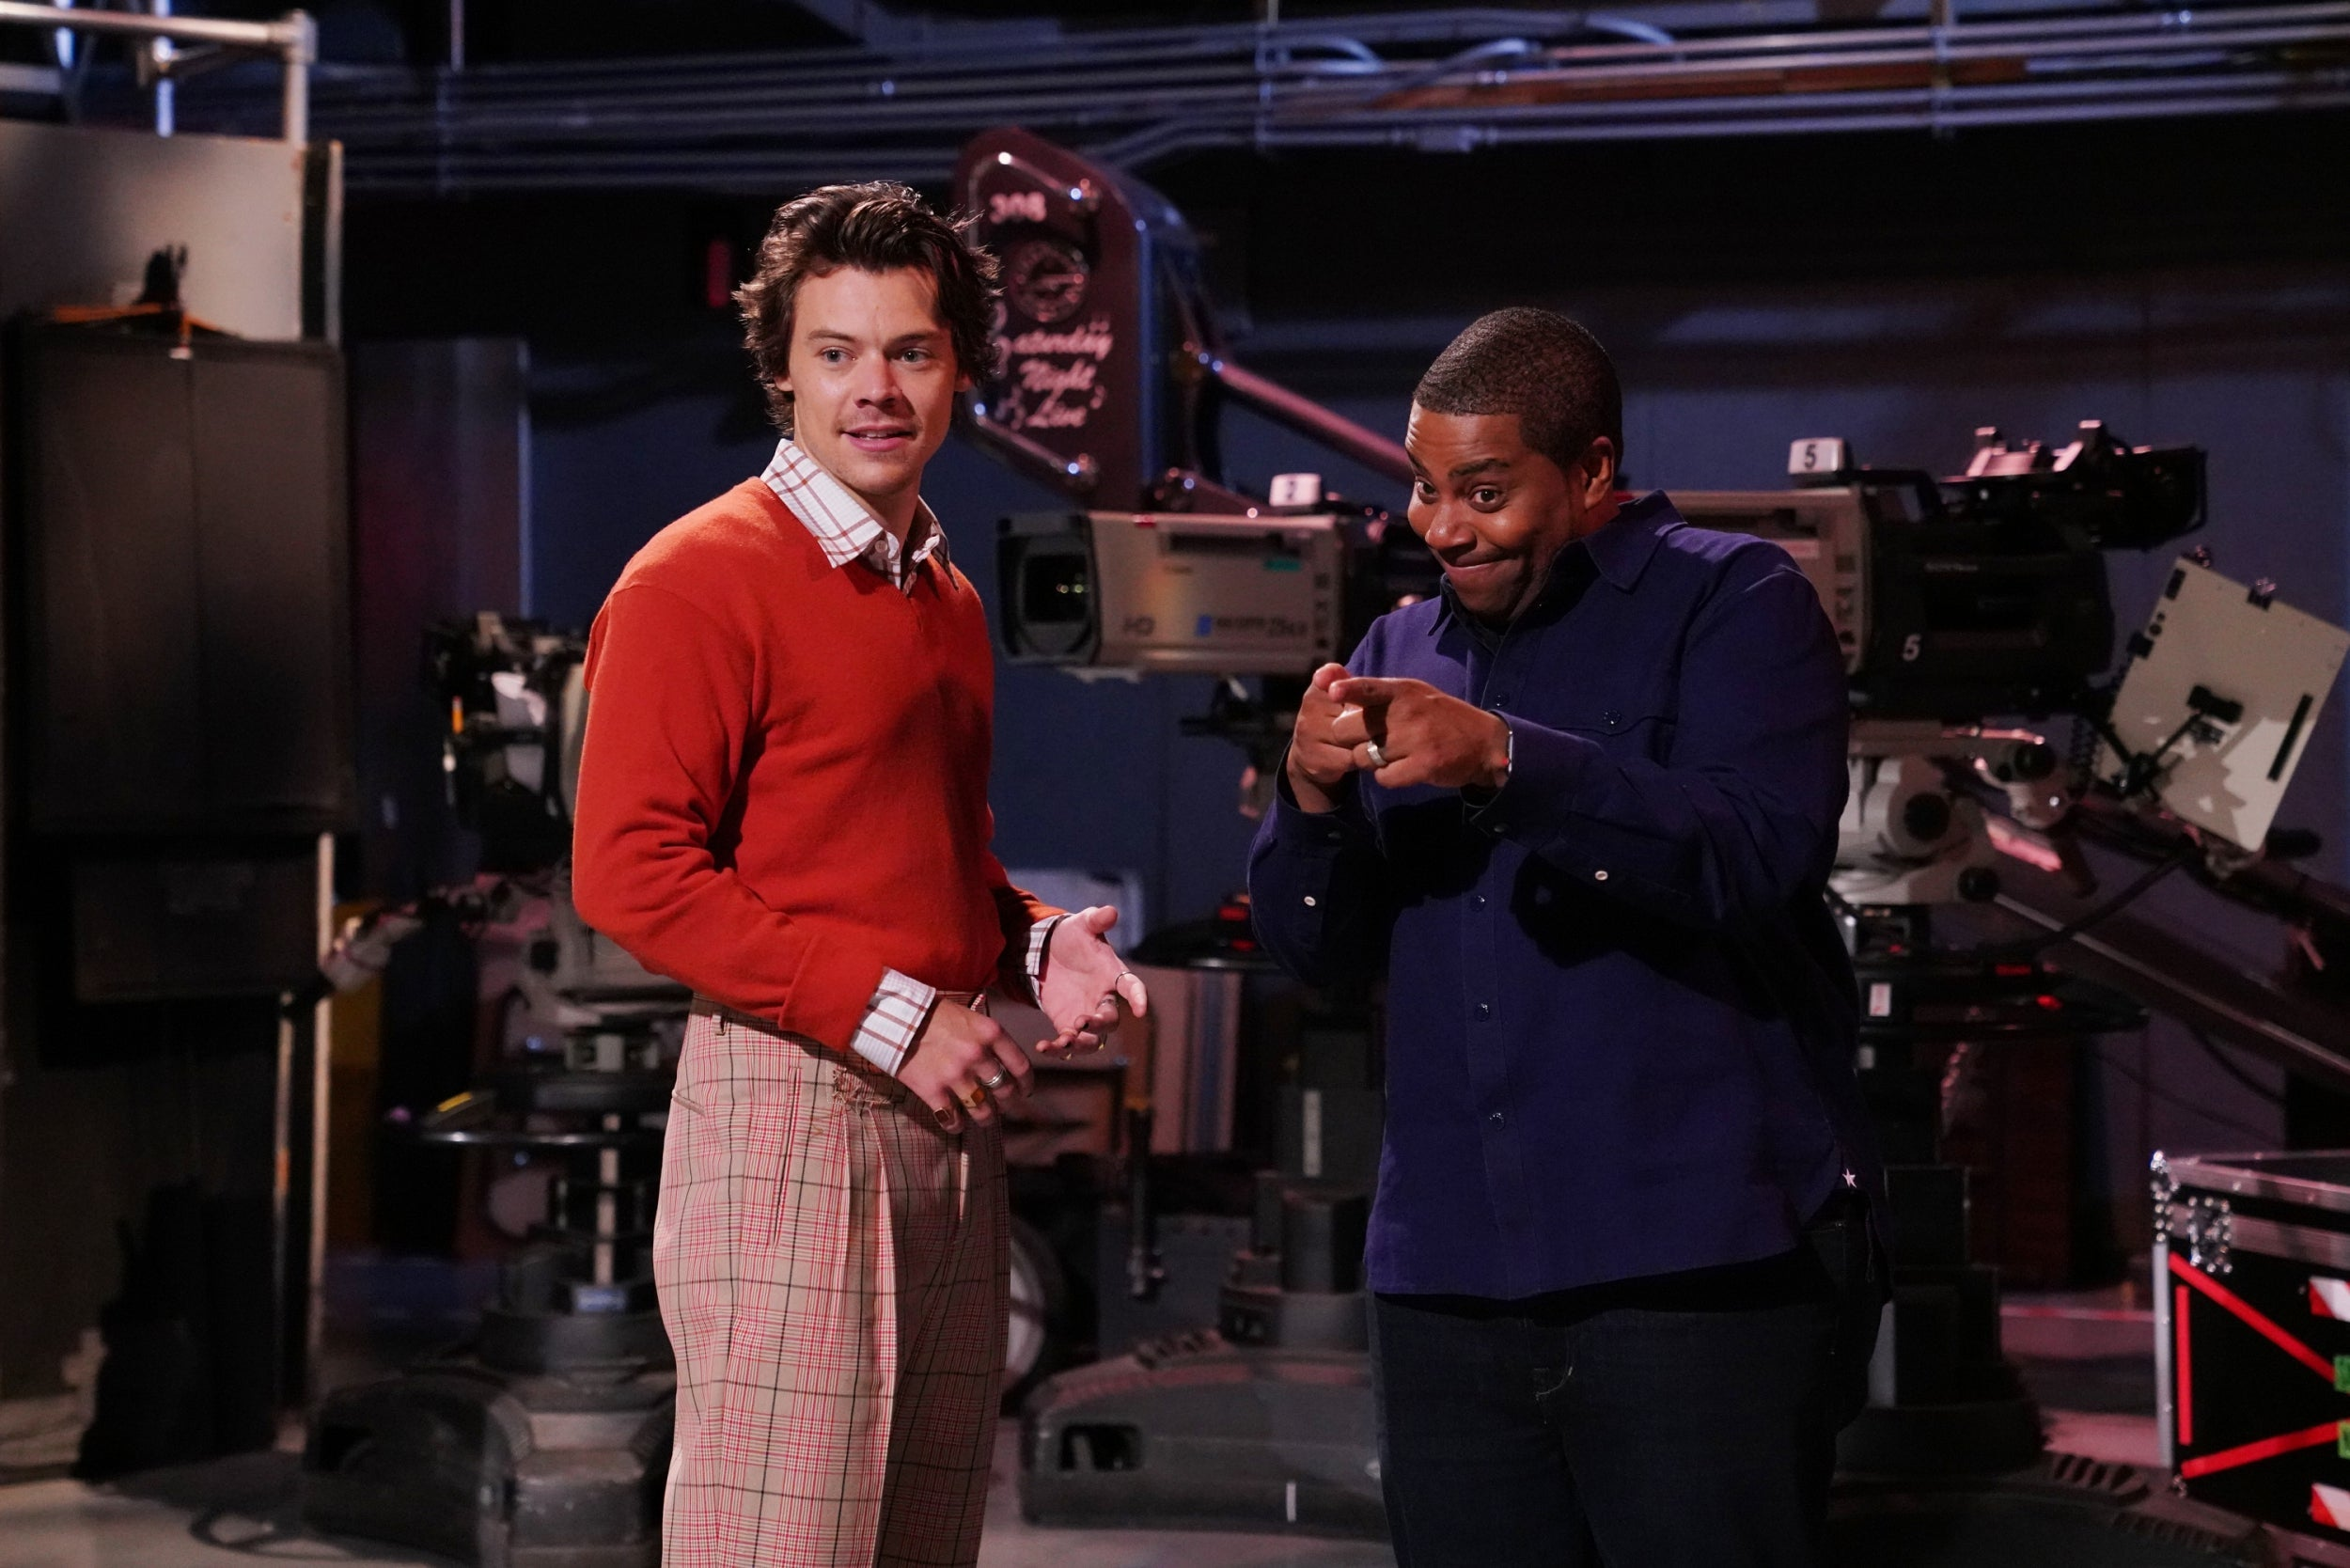 Harry Styles releases new song 'Watermelon Sugar' after SNL gig